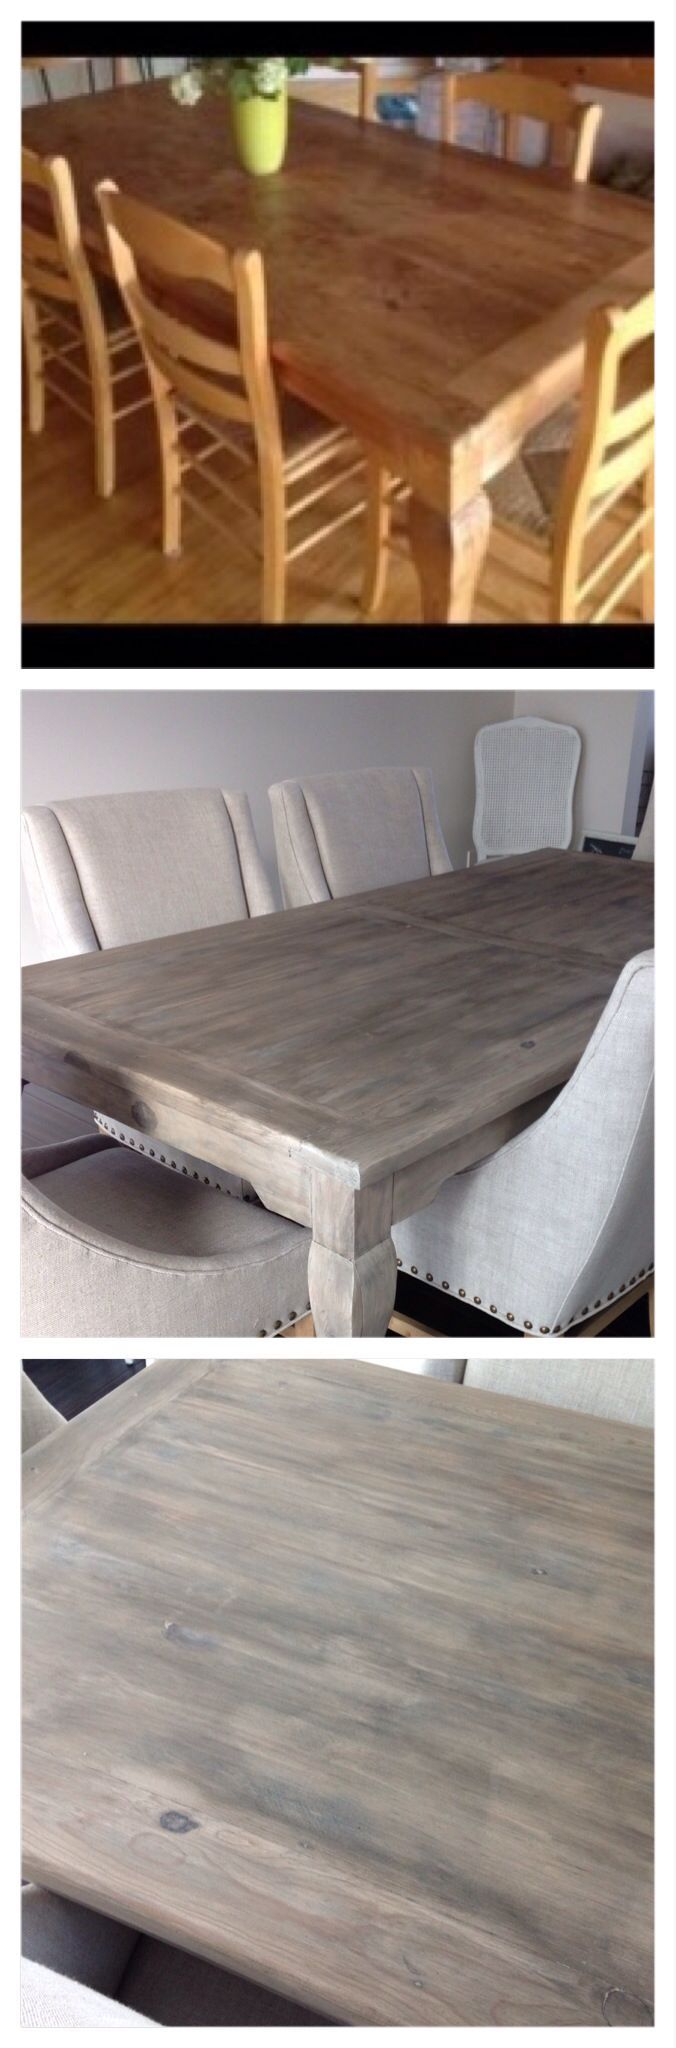 DIY Restoration Hardware finish. Craigslist table: stripped, sanded, bleached (I used a deck bleach), liming wax, glaze (two coats), clear wax. Lots of work, but I'm loving the weathered gray finish! However, I did break down --- the chairs are from RH ;)